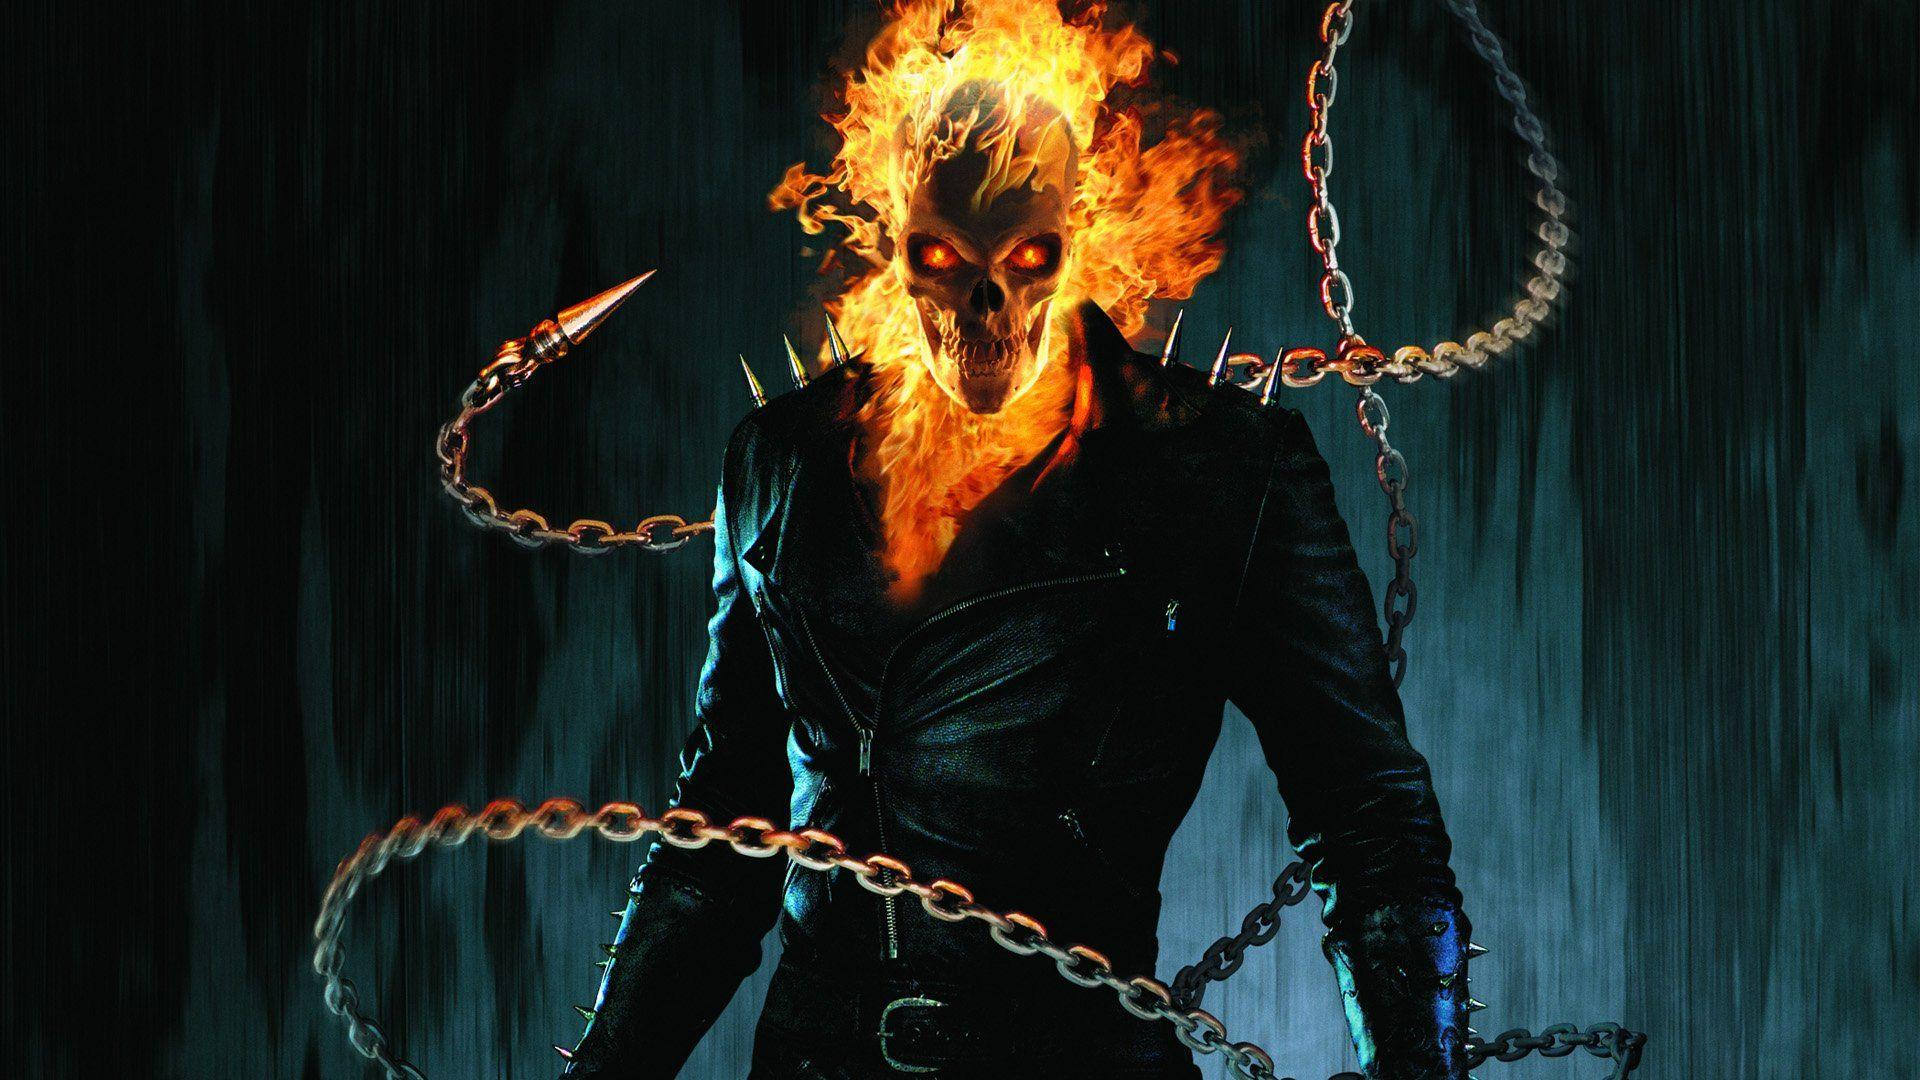 16 Ghost Rider HD Wallpapers